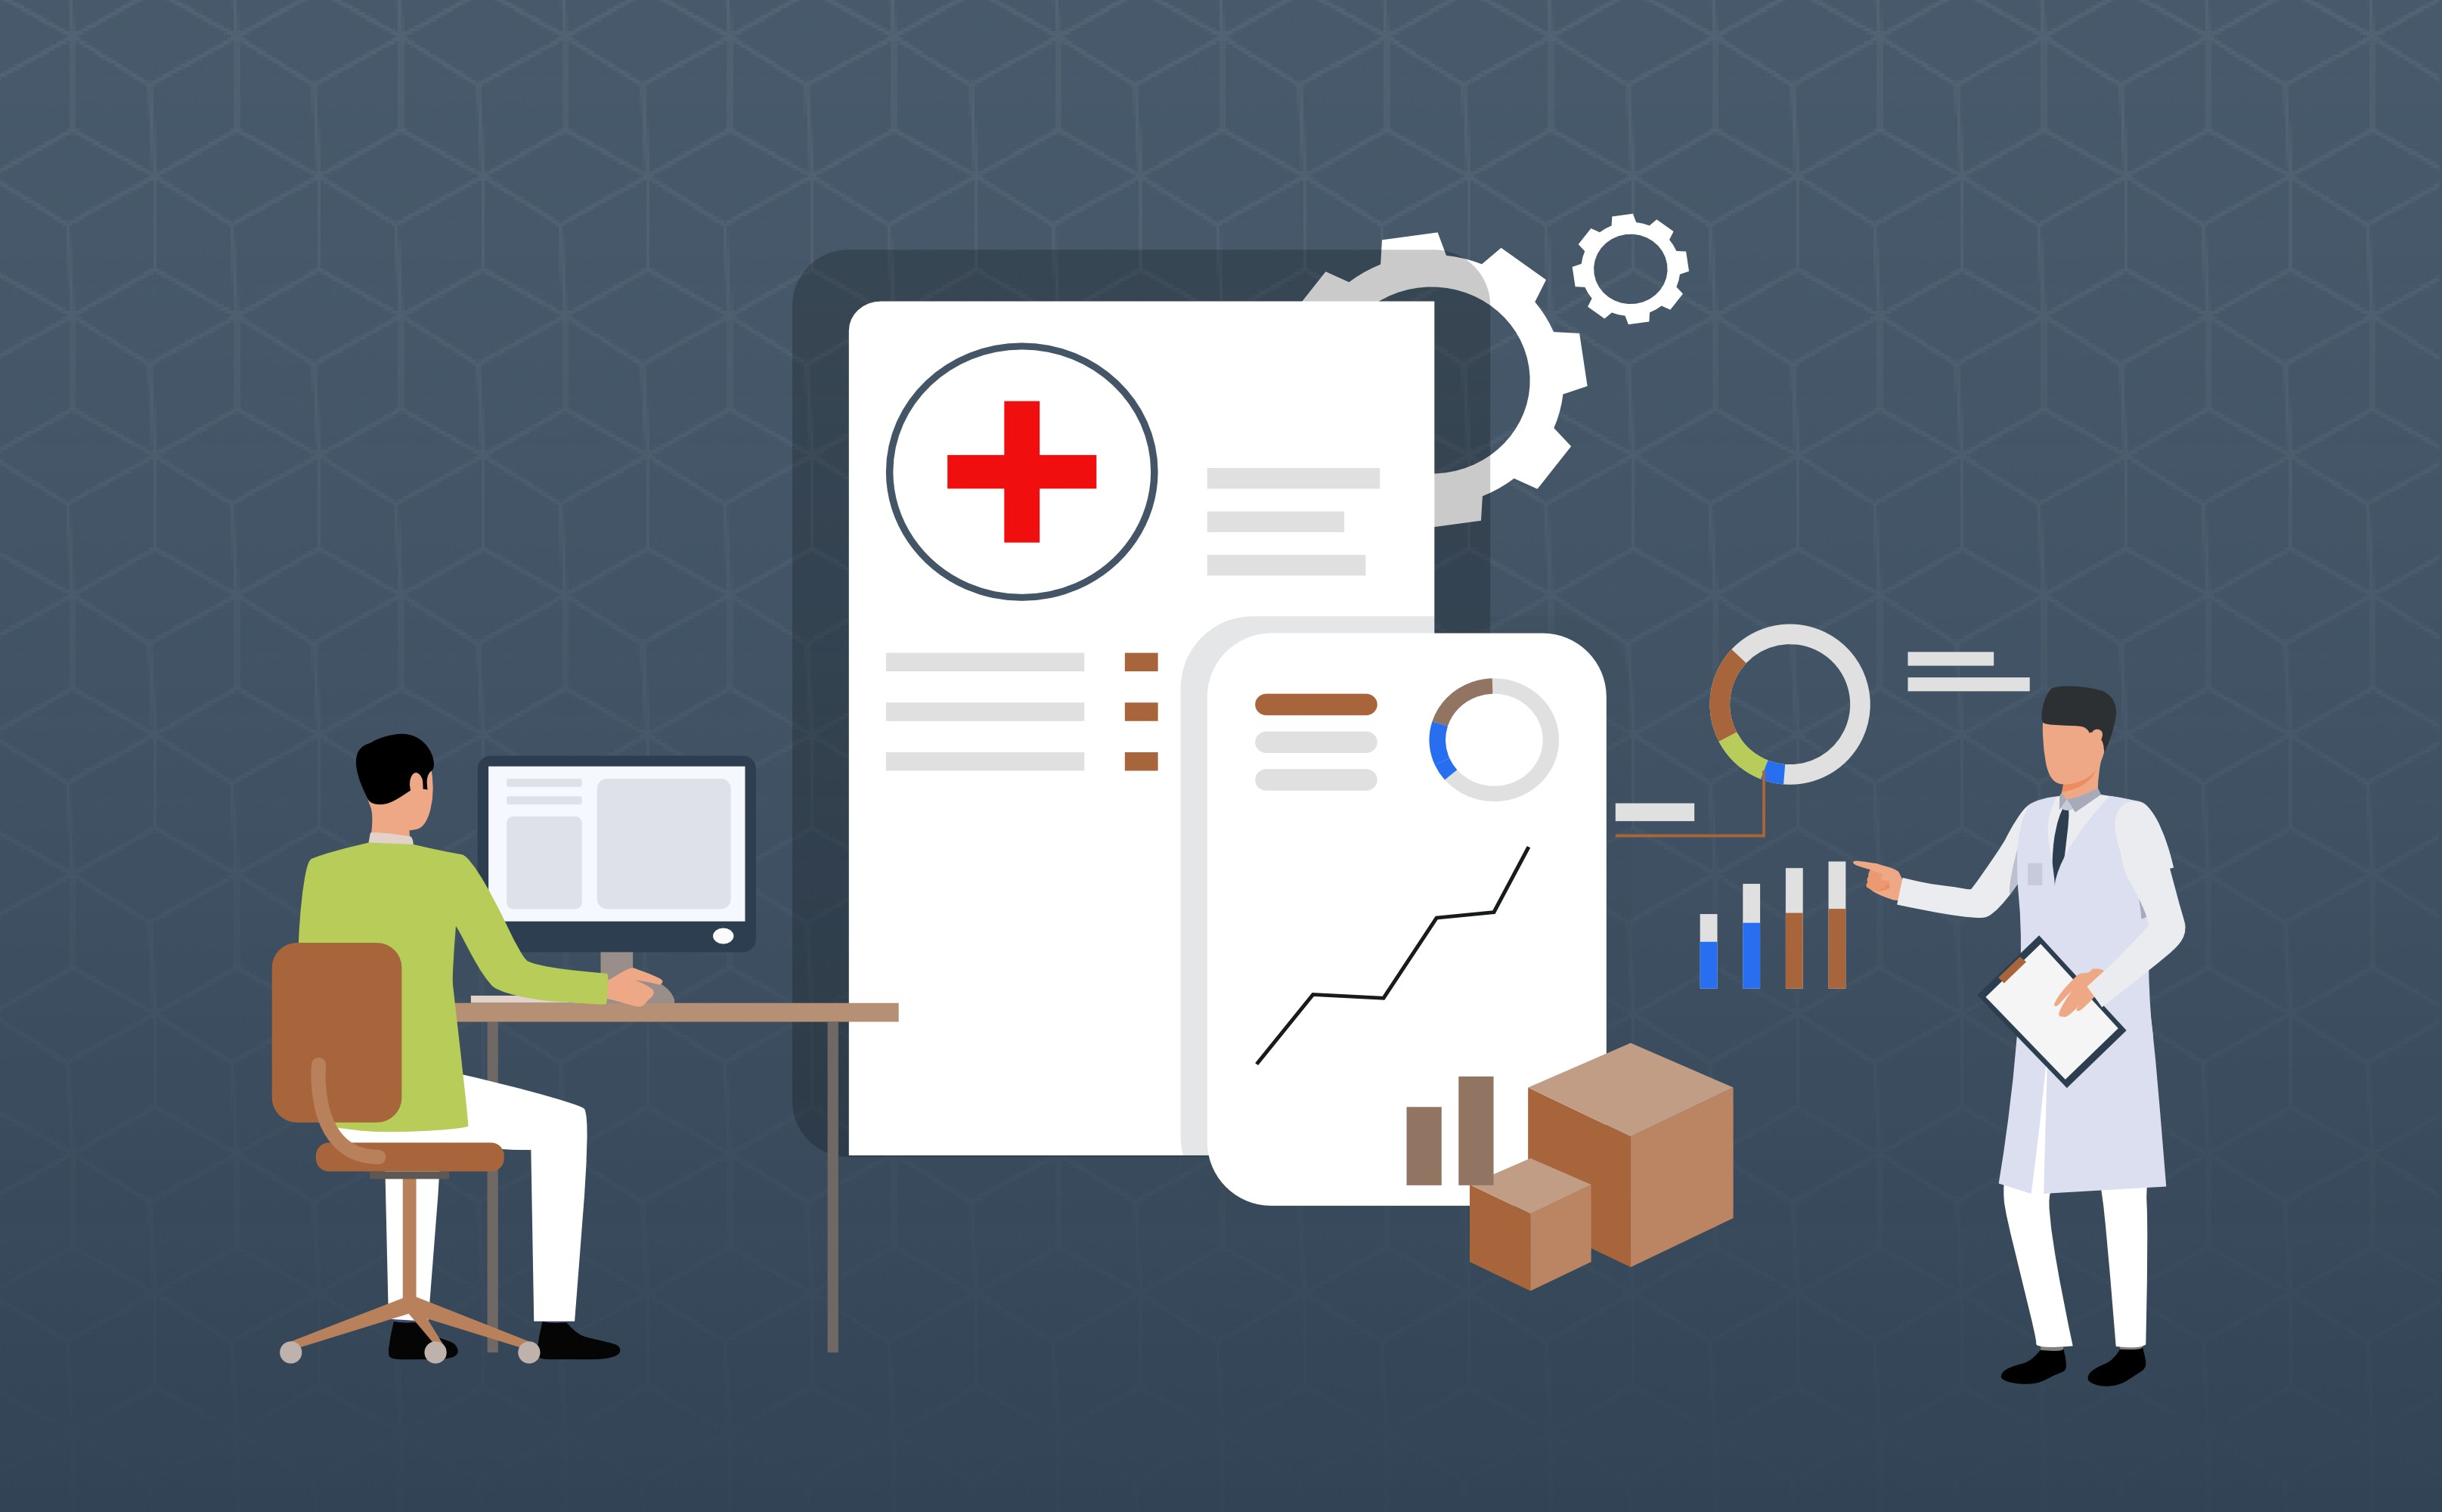 Electronic Health Records Market Size & Share Predicted to Reach USD 40 Billion by 2026: Facts & Factors